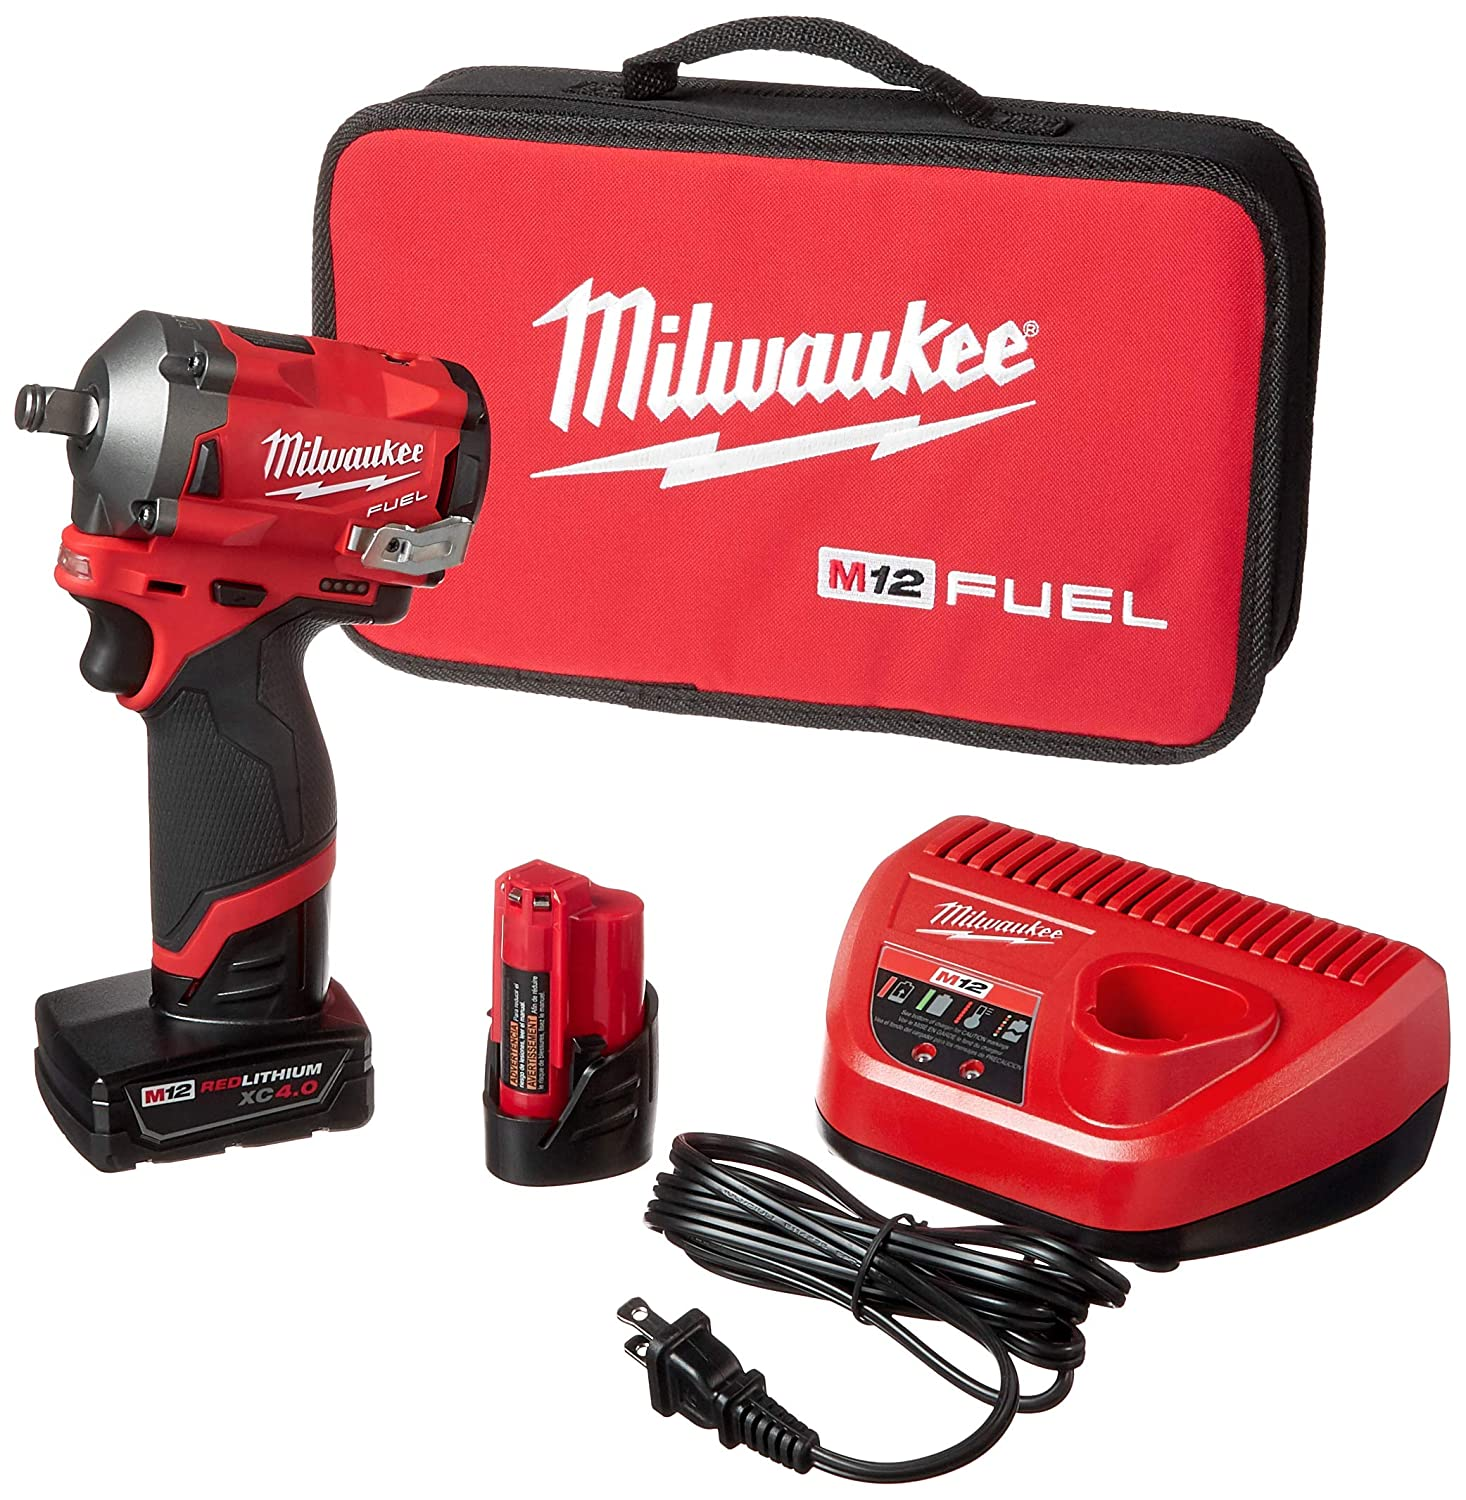 Milwaukee 2555-22 M12 FUEL 12-Volt Lithium-Ion Brushless Cordless Stubby 1 2 in. Impact Wrench Kit with One 4.0 and One 2.0Ah Batteries